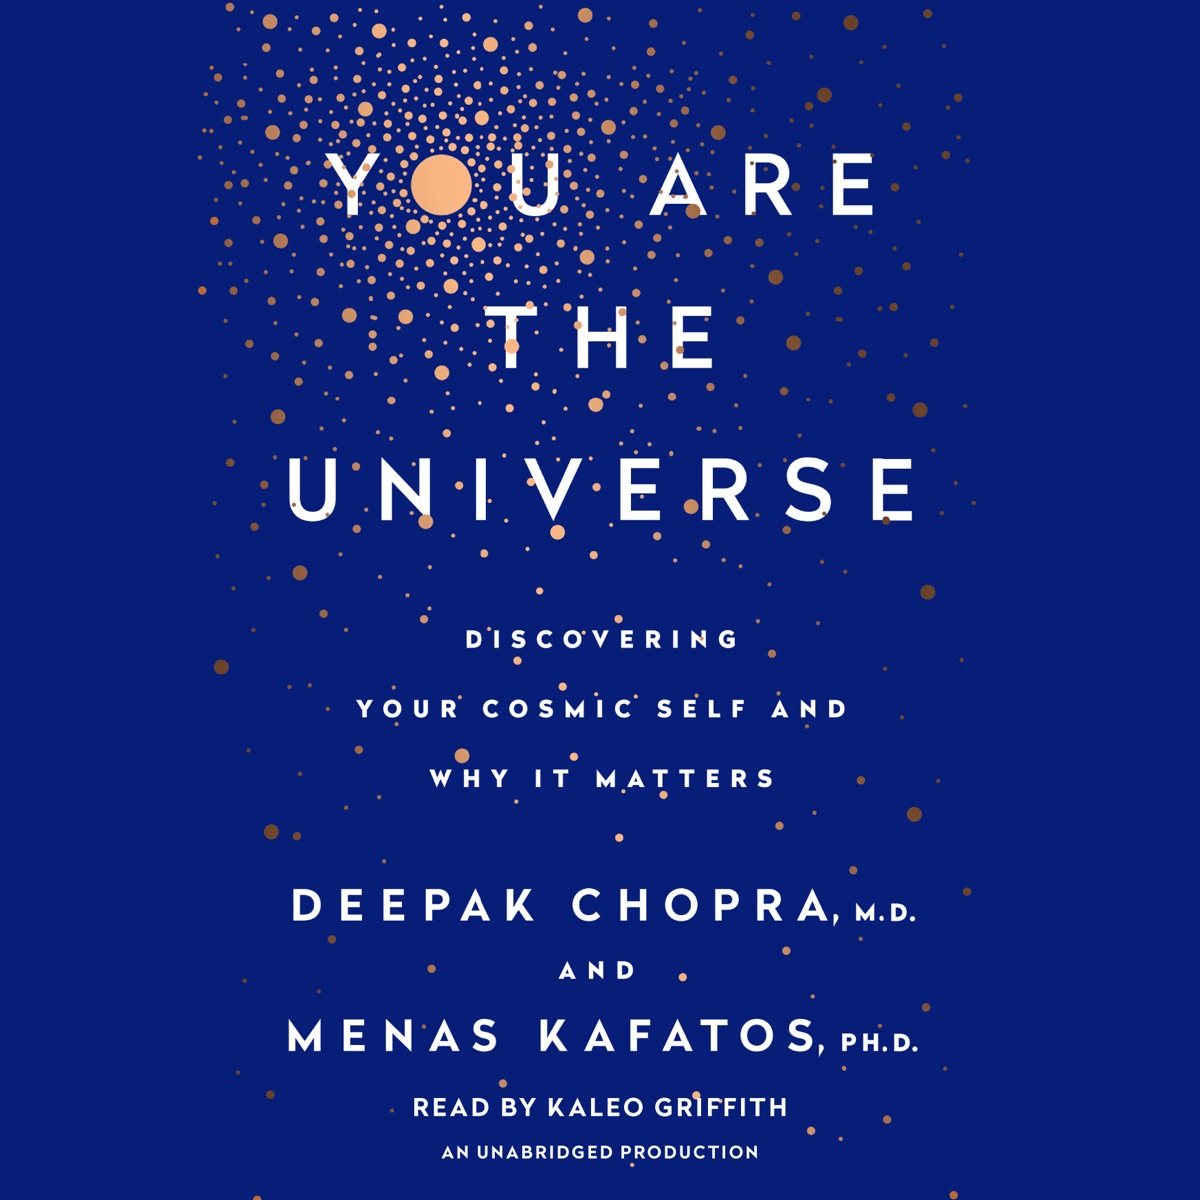 You Are The Universe Discovering Your Cosmic Self And Why